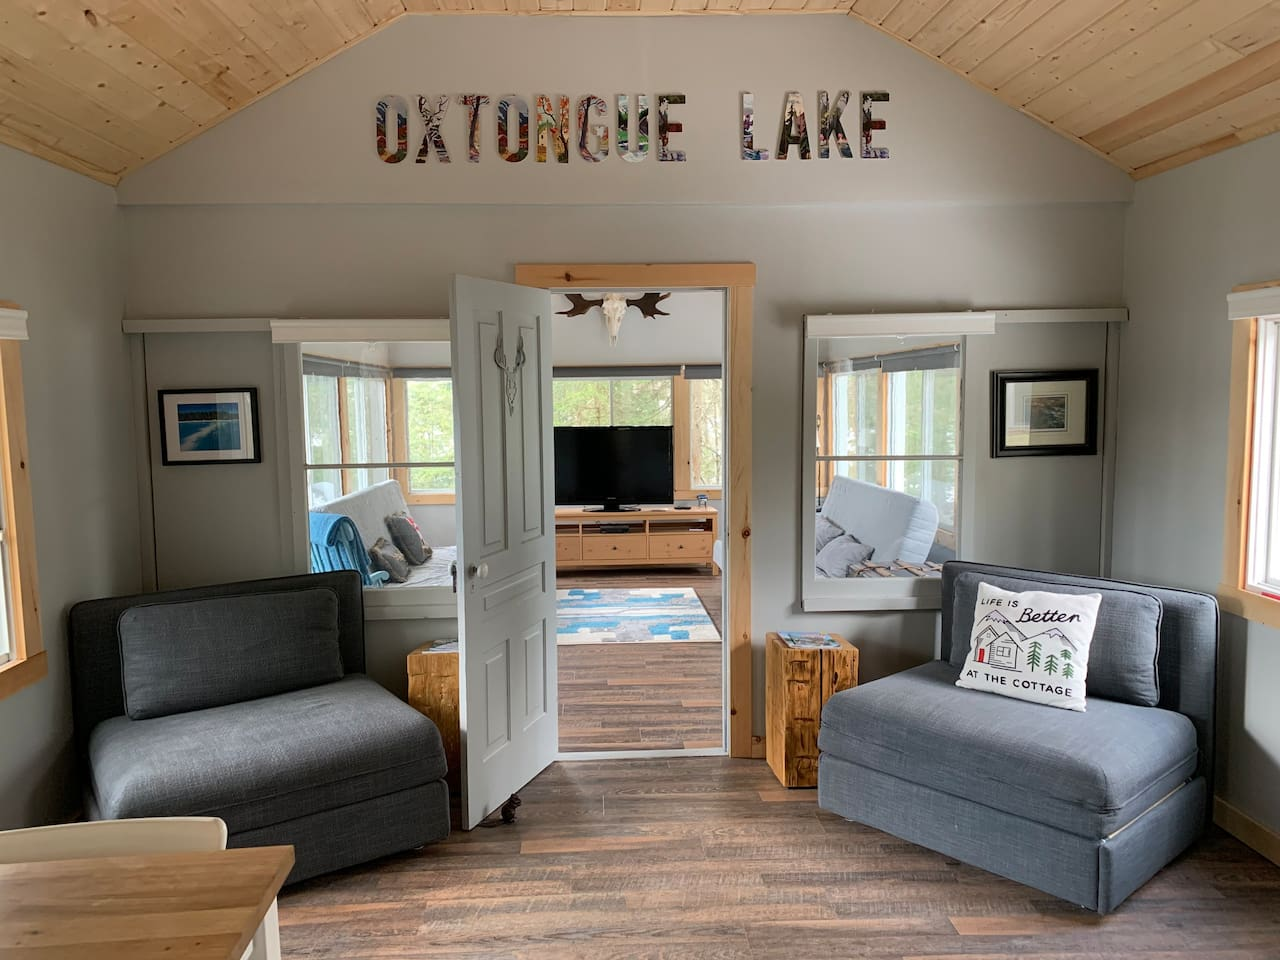 Welcome to Oxtongue Lake. The living room has 2 single chairs that pull out into single beds.